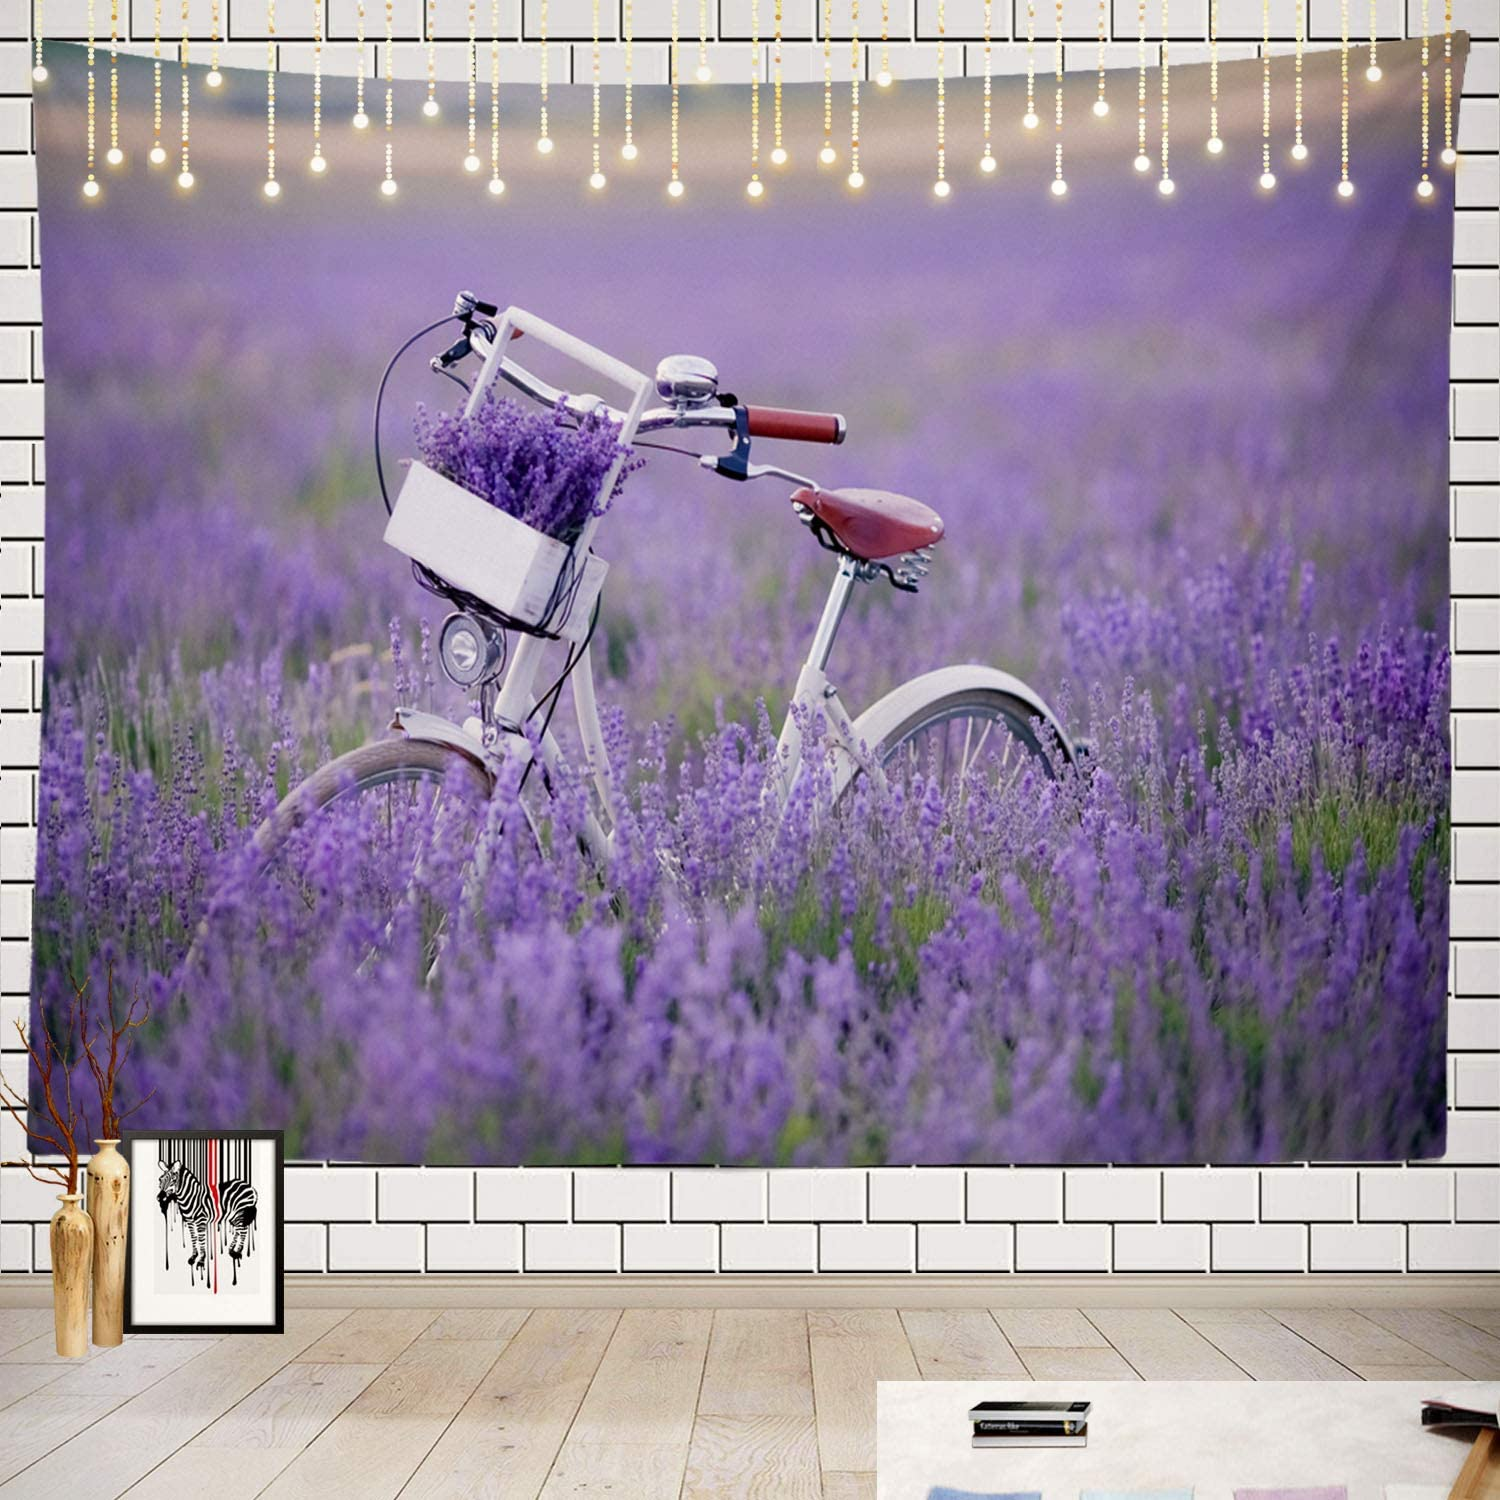 Batmerry Lavender Retro Tapestry, Lavender Field Retro Bike Agriculture Picnic Mat Hippie Trippy Tapestry Wall Art Meditation Decor for Bedroom Living Room Dorm, 51.2 x 59.1 Inches, Lavender